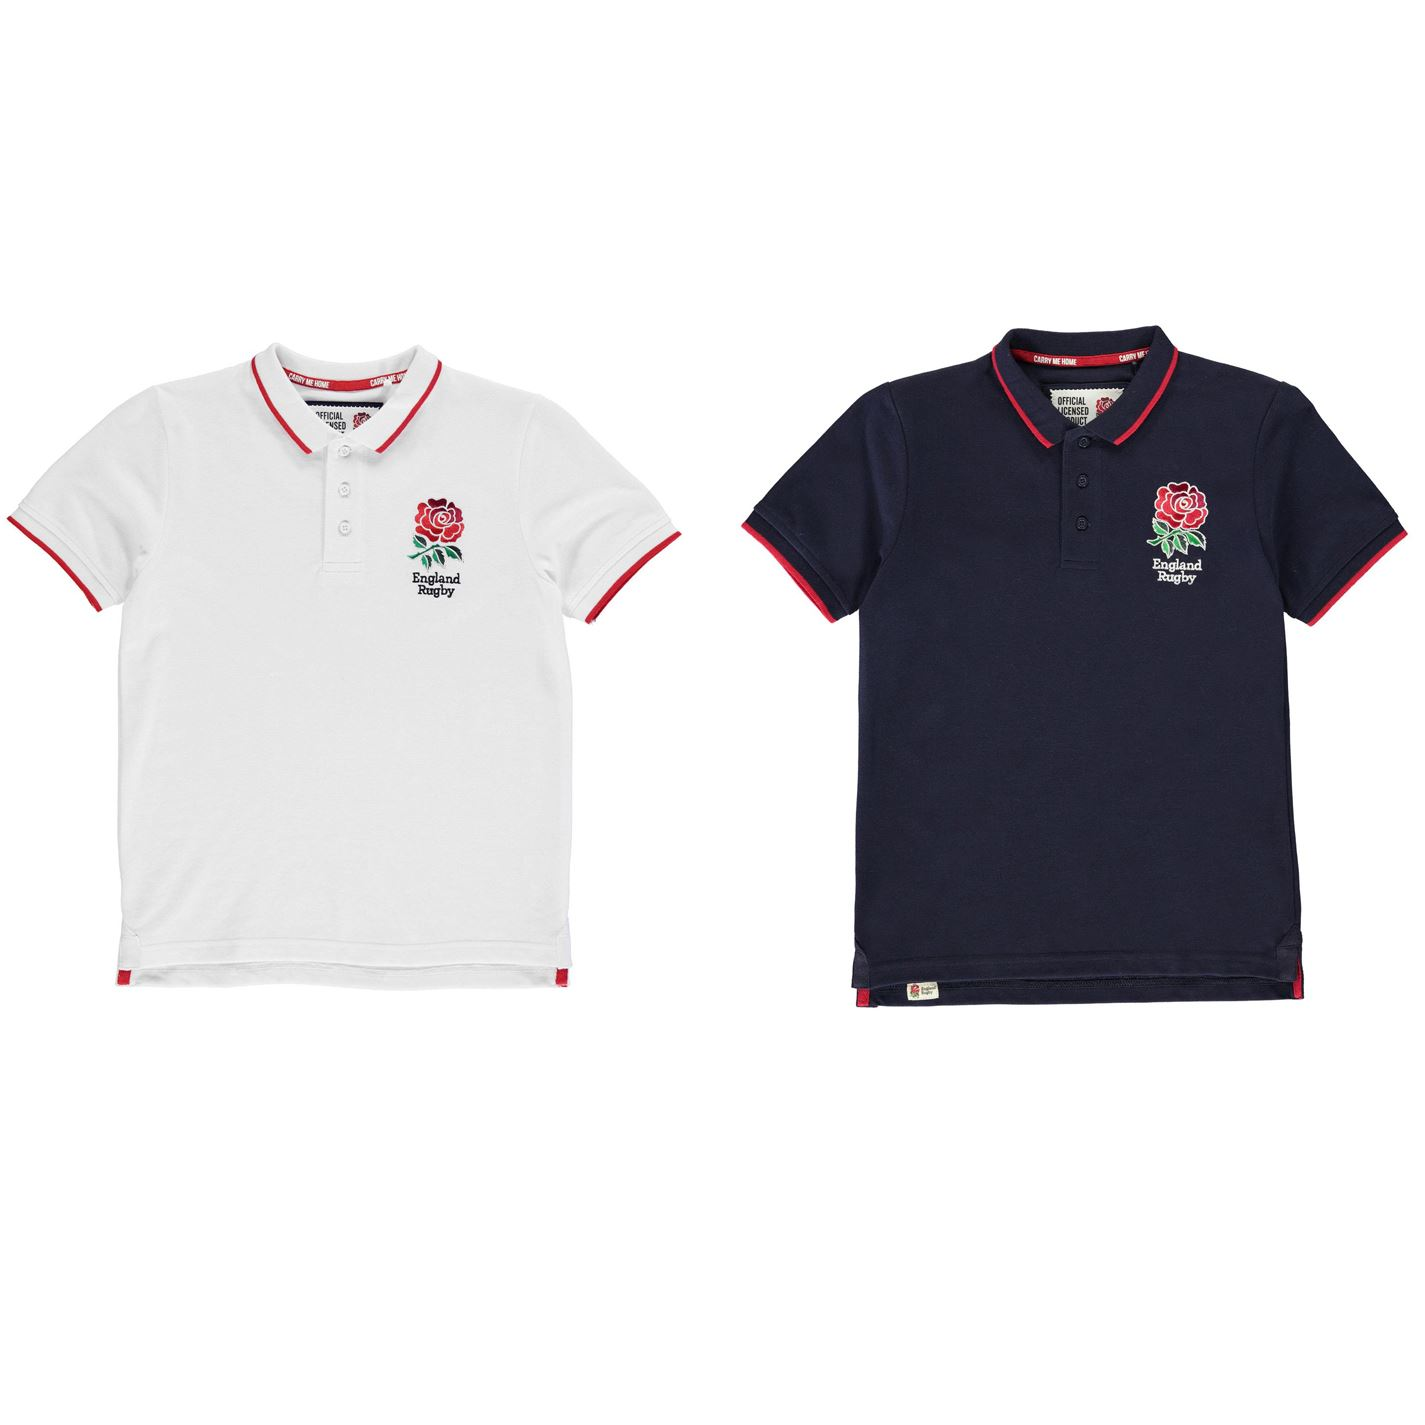 Junior Boys Casual England Rugby Crest Core Polo Shirt Top